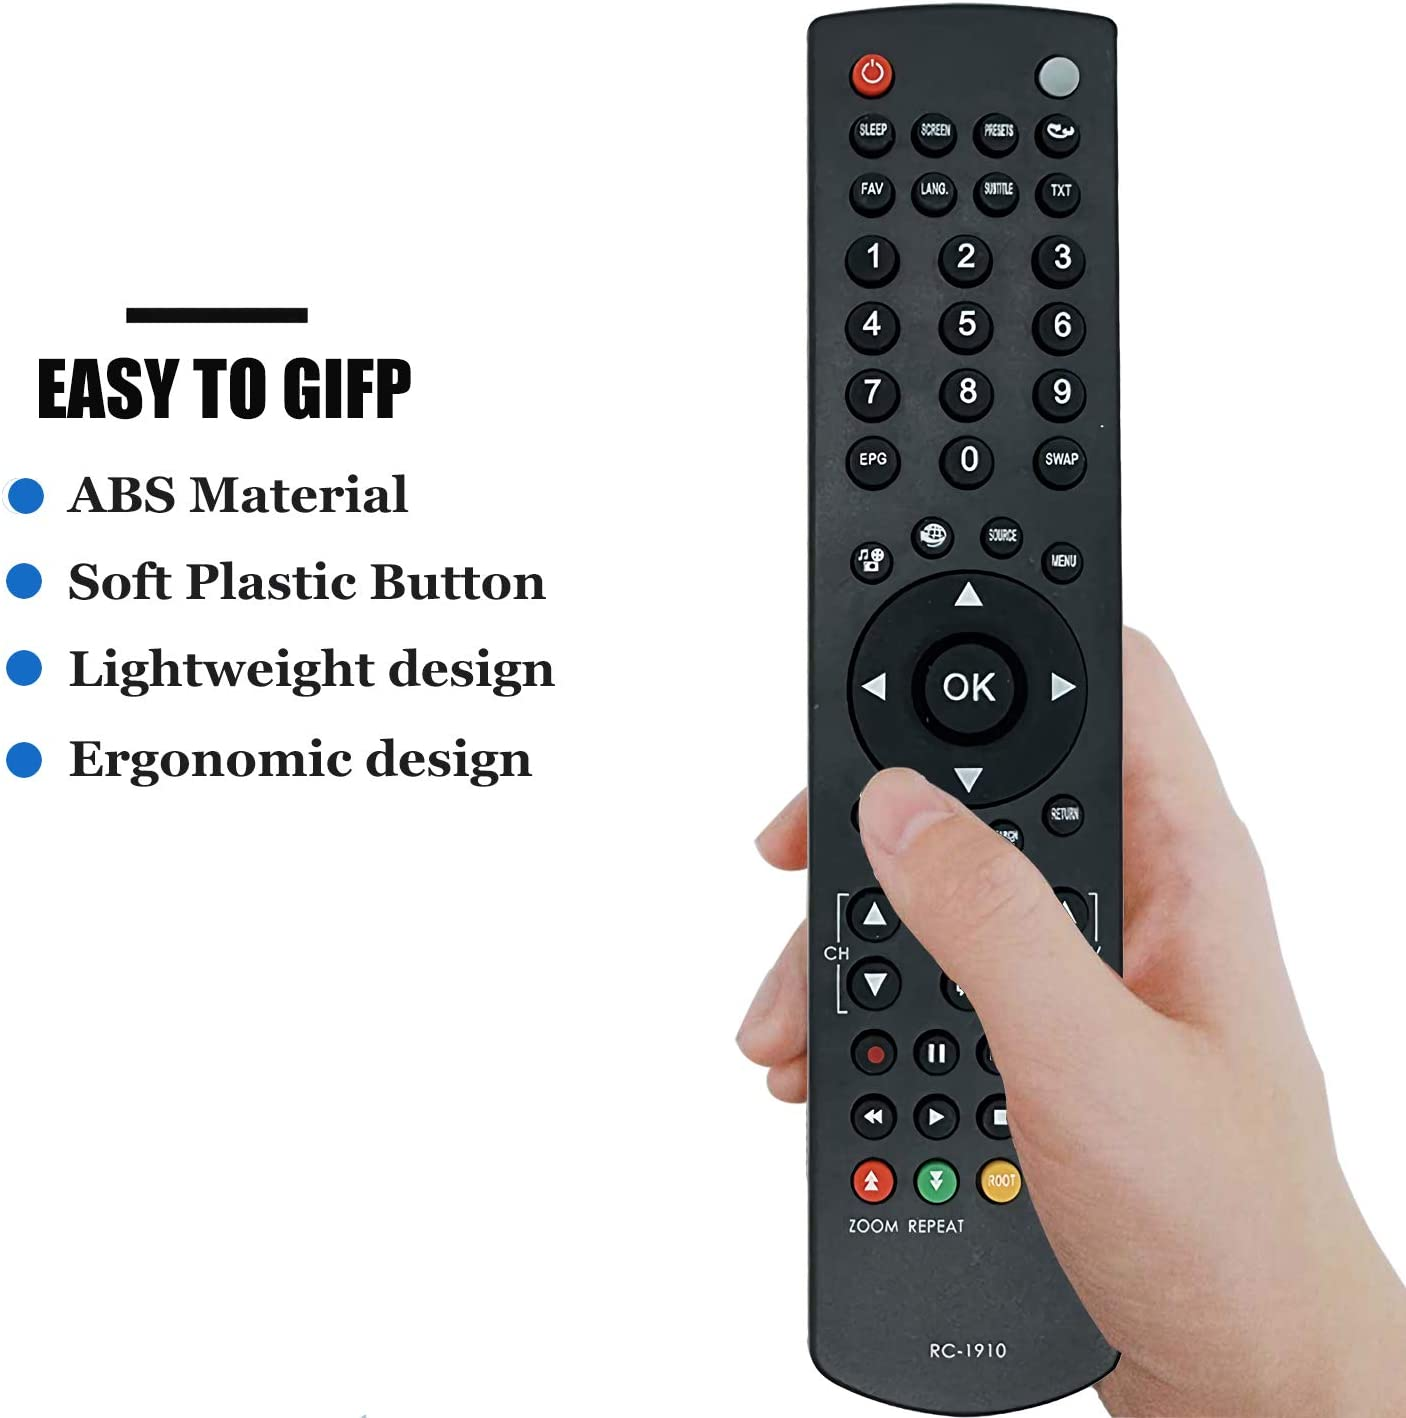 RC1910 Replacement Remote for Toshiba TV Remote Control for Toshiba RC-1910 Smart LED LCD Plasma TV No Setup Required TV Universal Remote Control